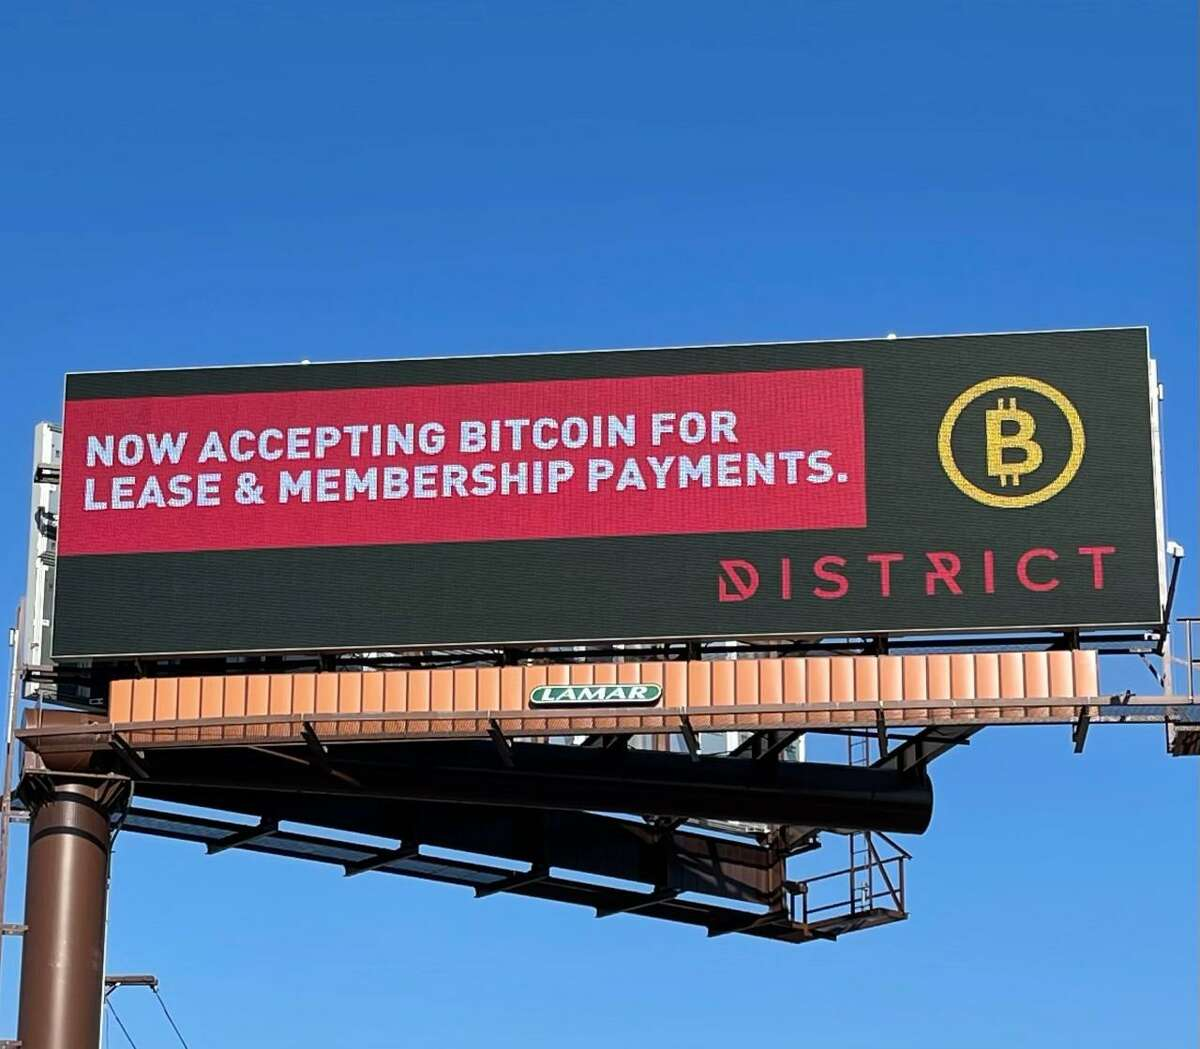 A billboard announcing that The District, a New Haven-based technology business incubator and co-working center, has begun accepting cryptocurrency as payment for membership fees and leasing costs.